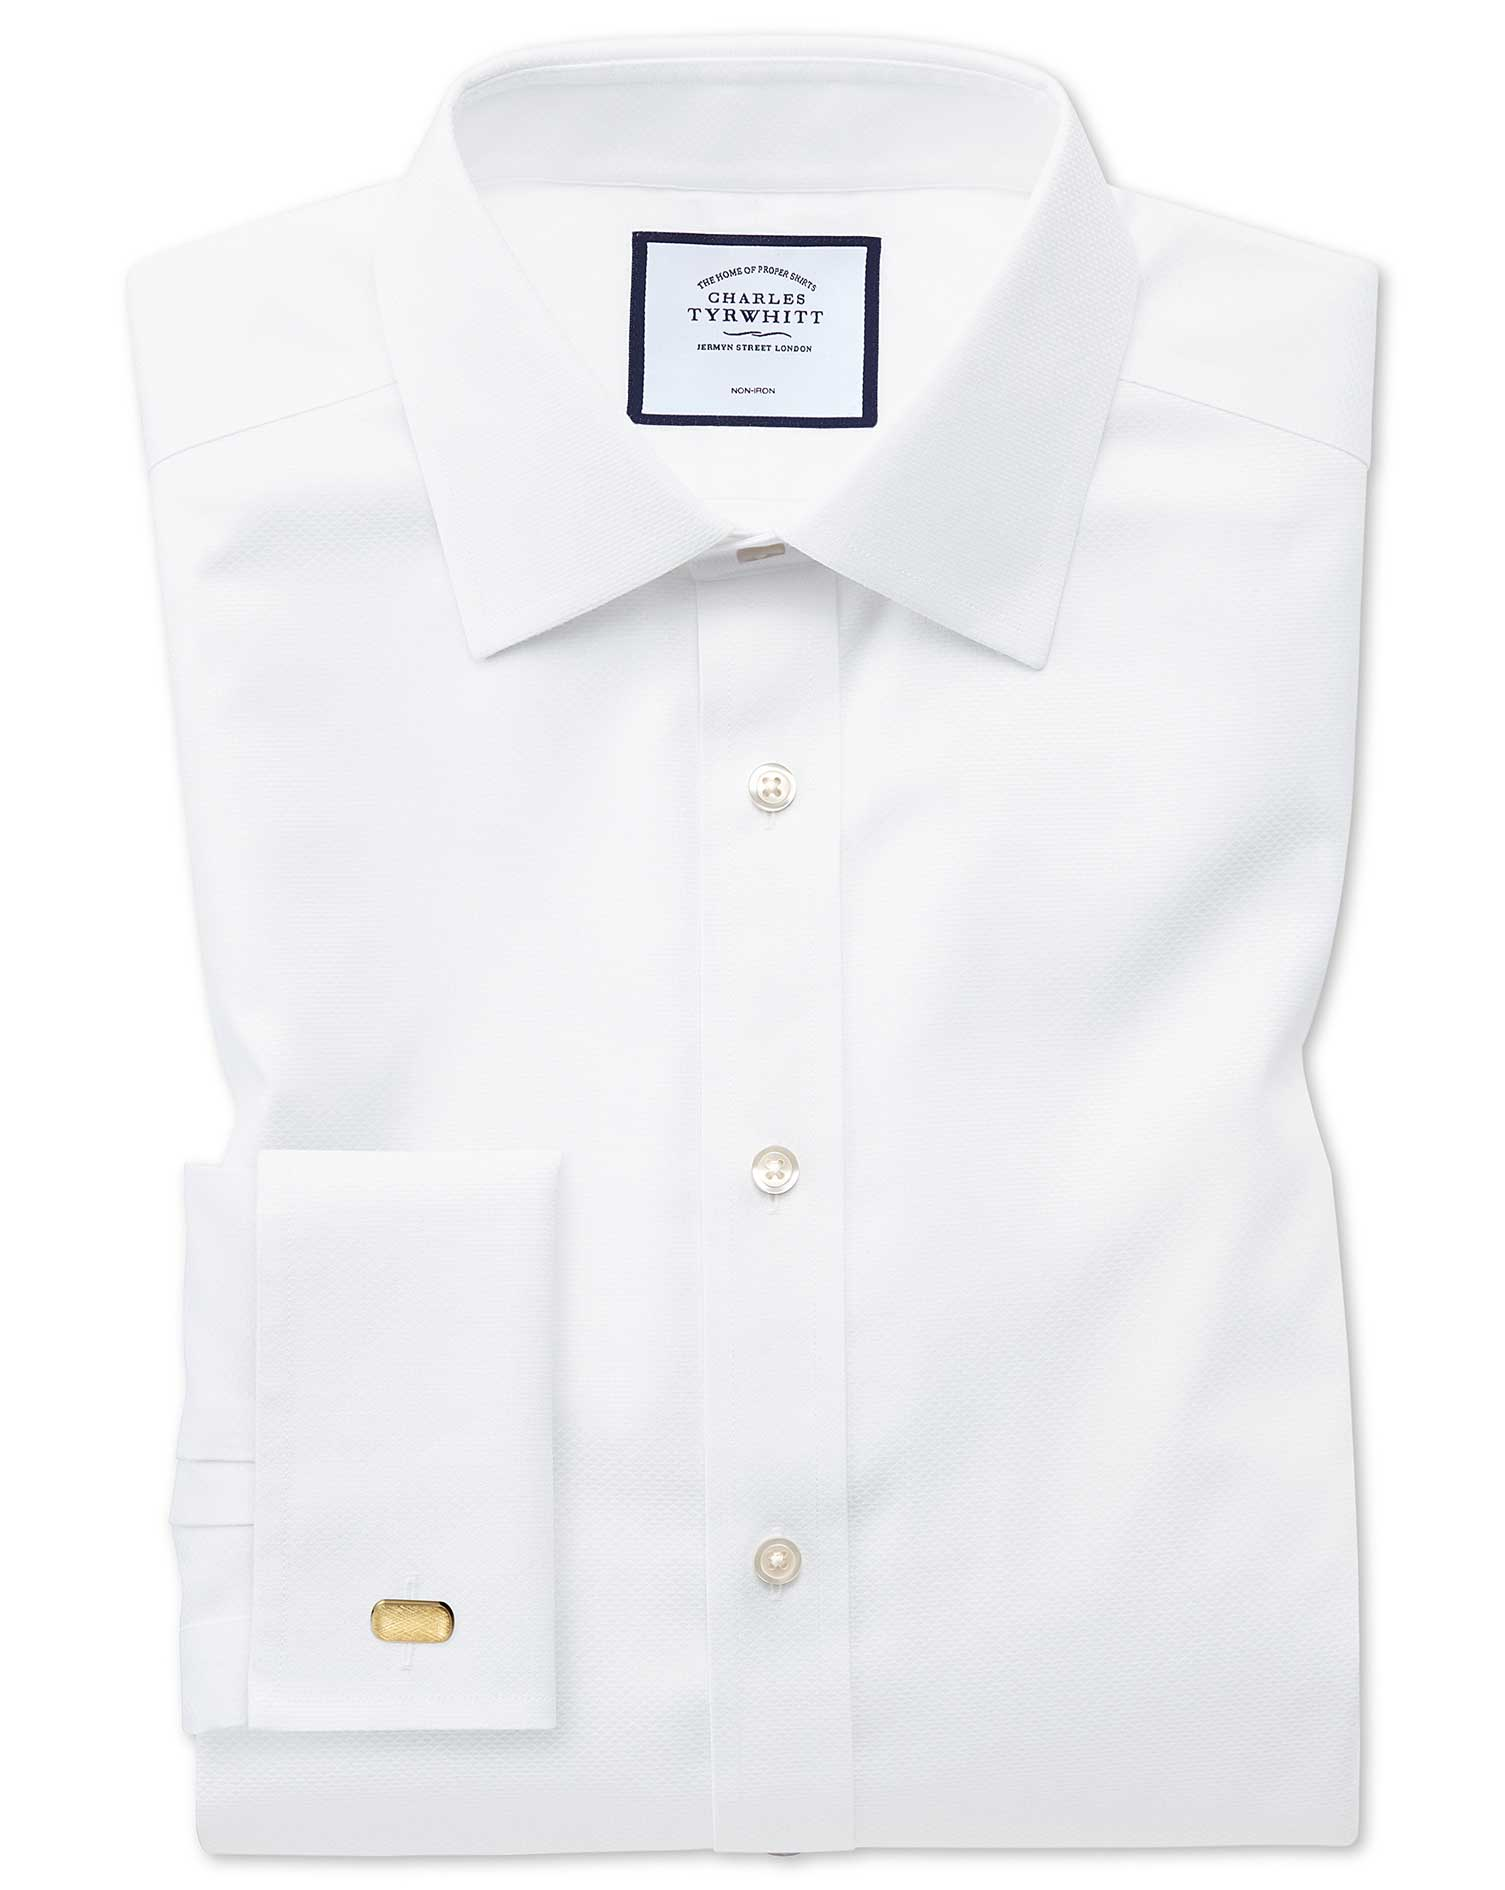 Extra Slim Fit Non-Iron White Triangle Weave Cotton Formal Shirt Single Cuff Size 16/38 by Charles T